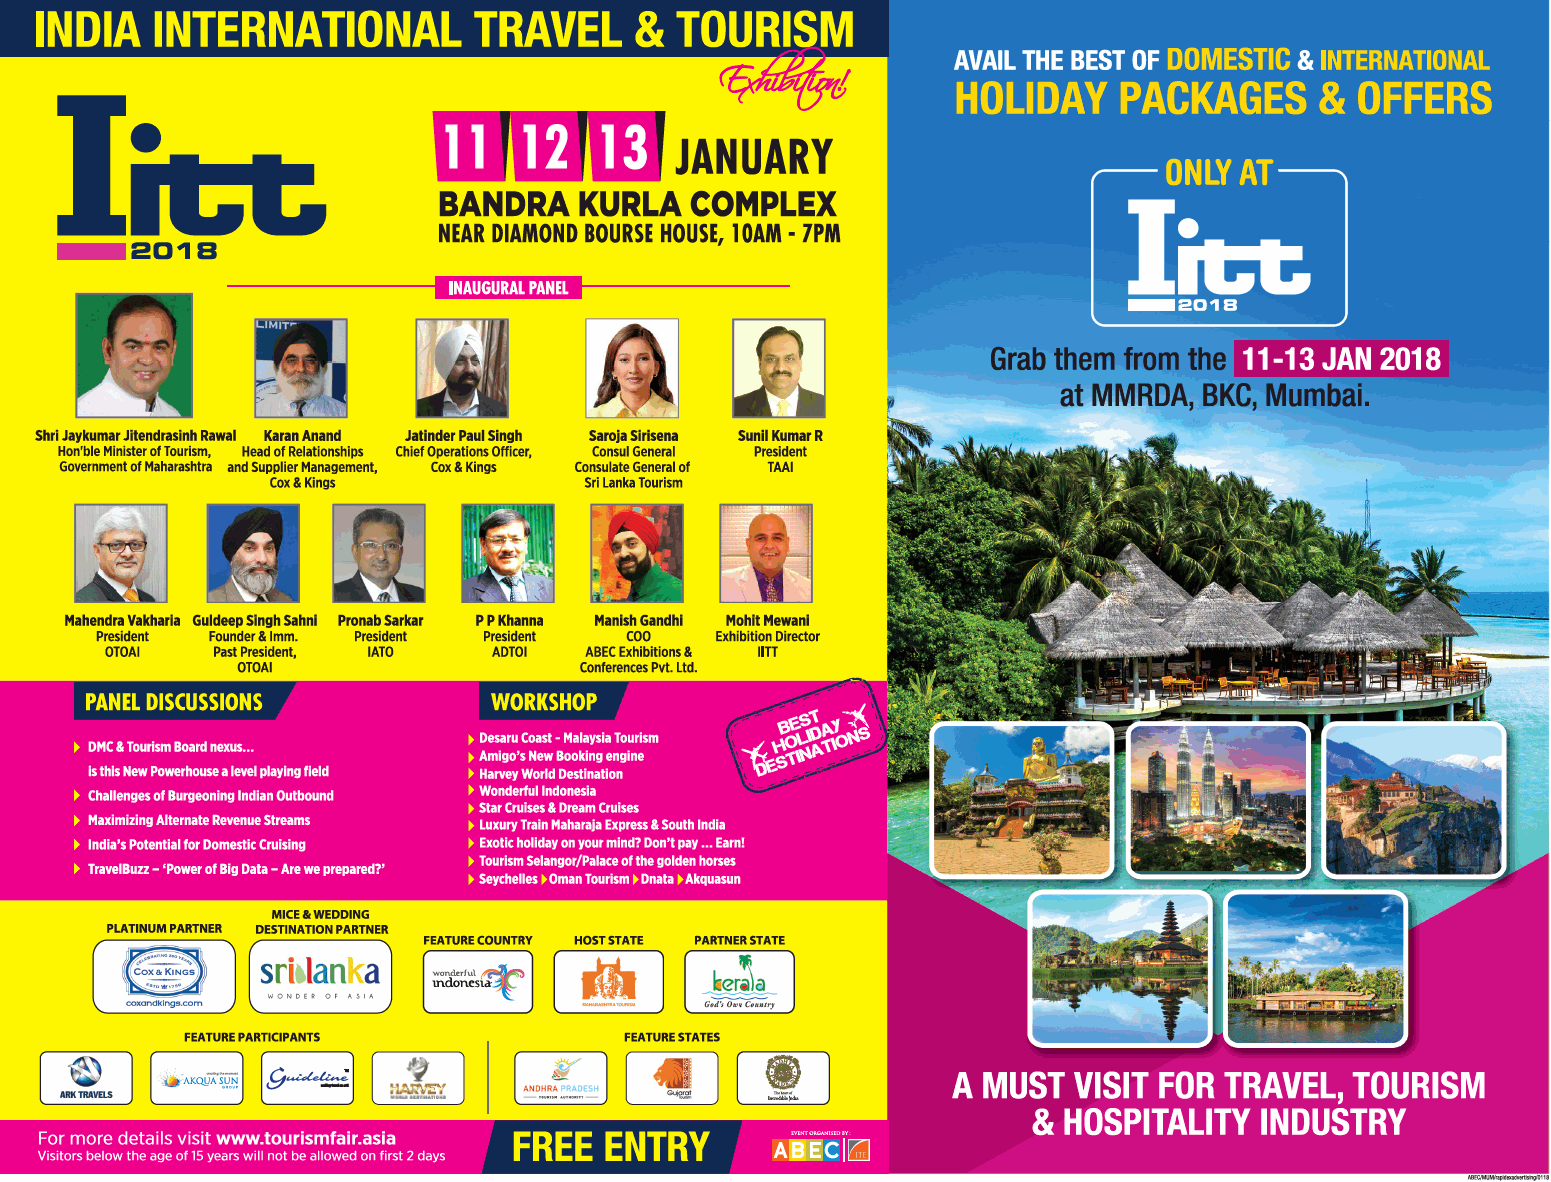 India International Travel And Tourism Holiday Packages